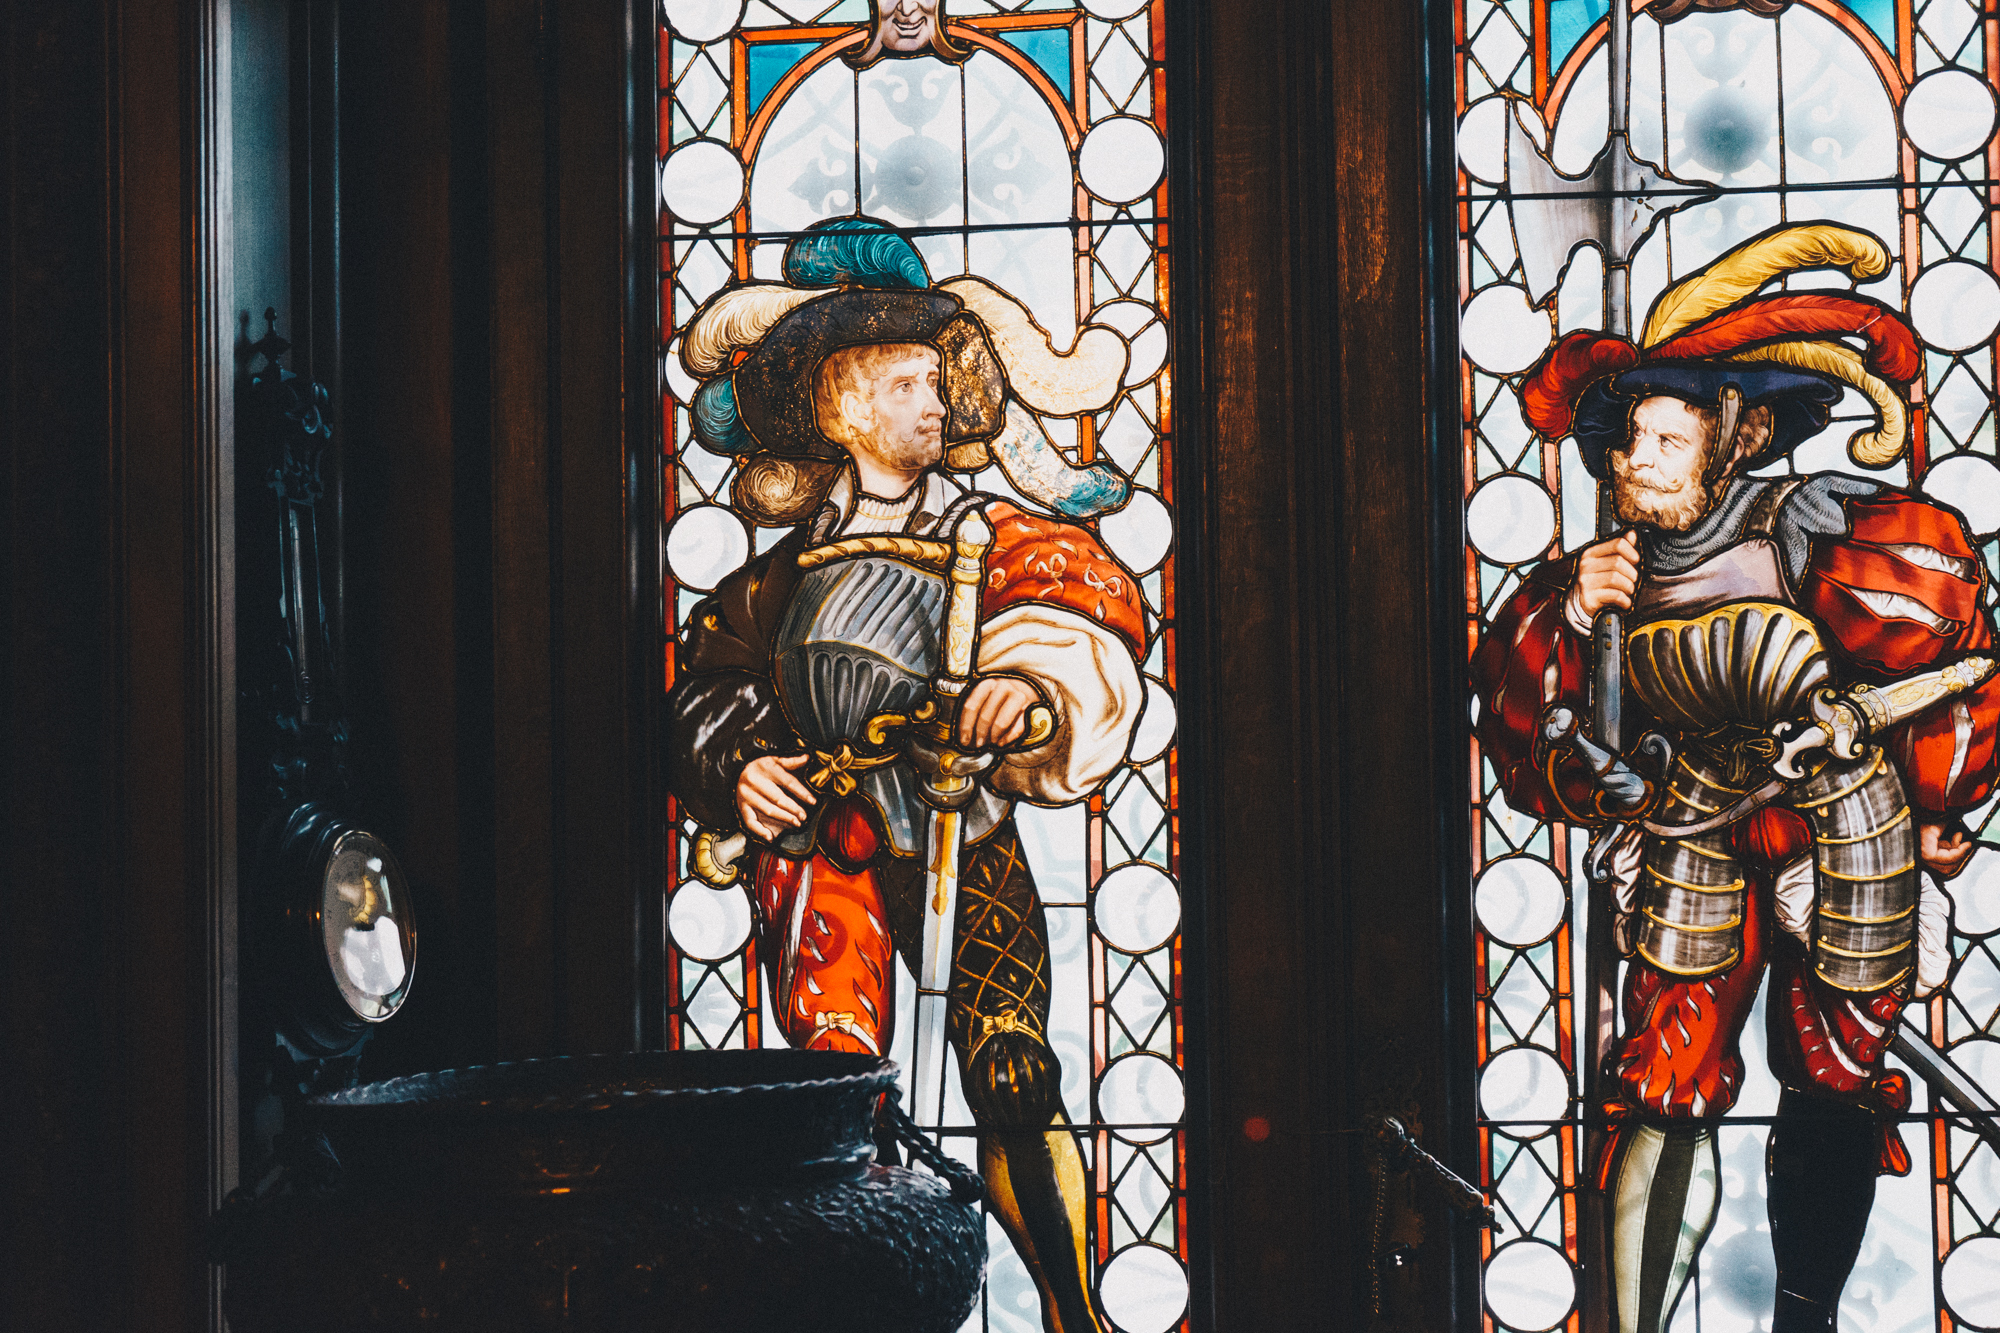 Stained Glass Art in Peles Castle in Sinaia, Romania